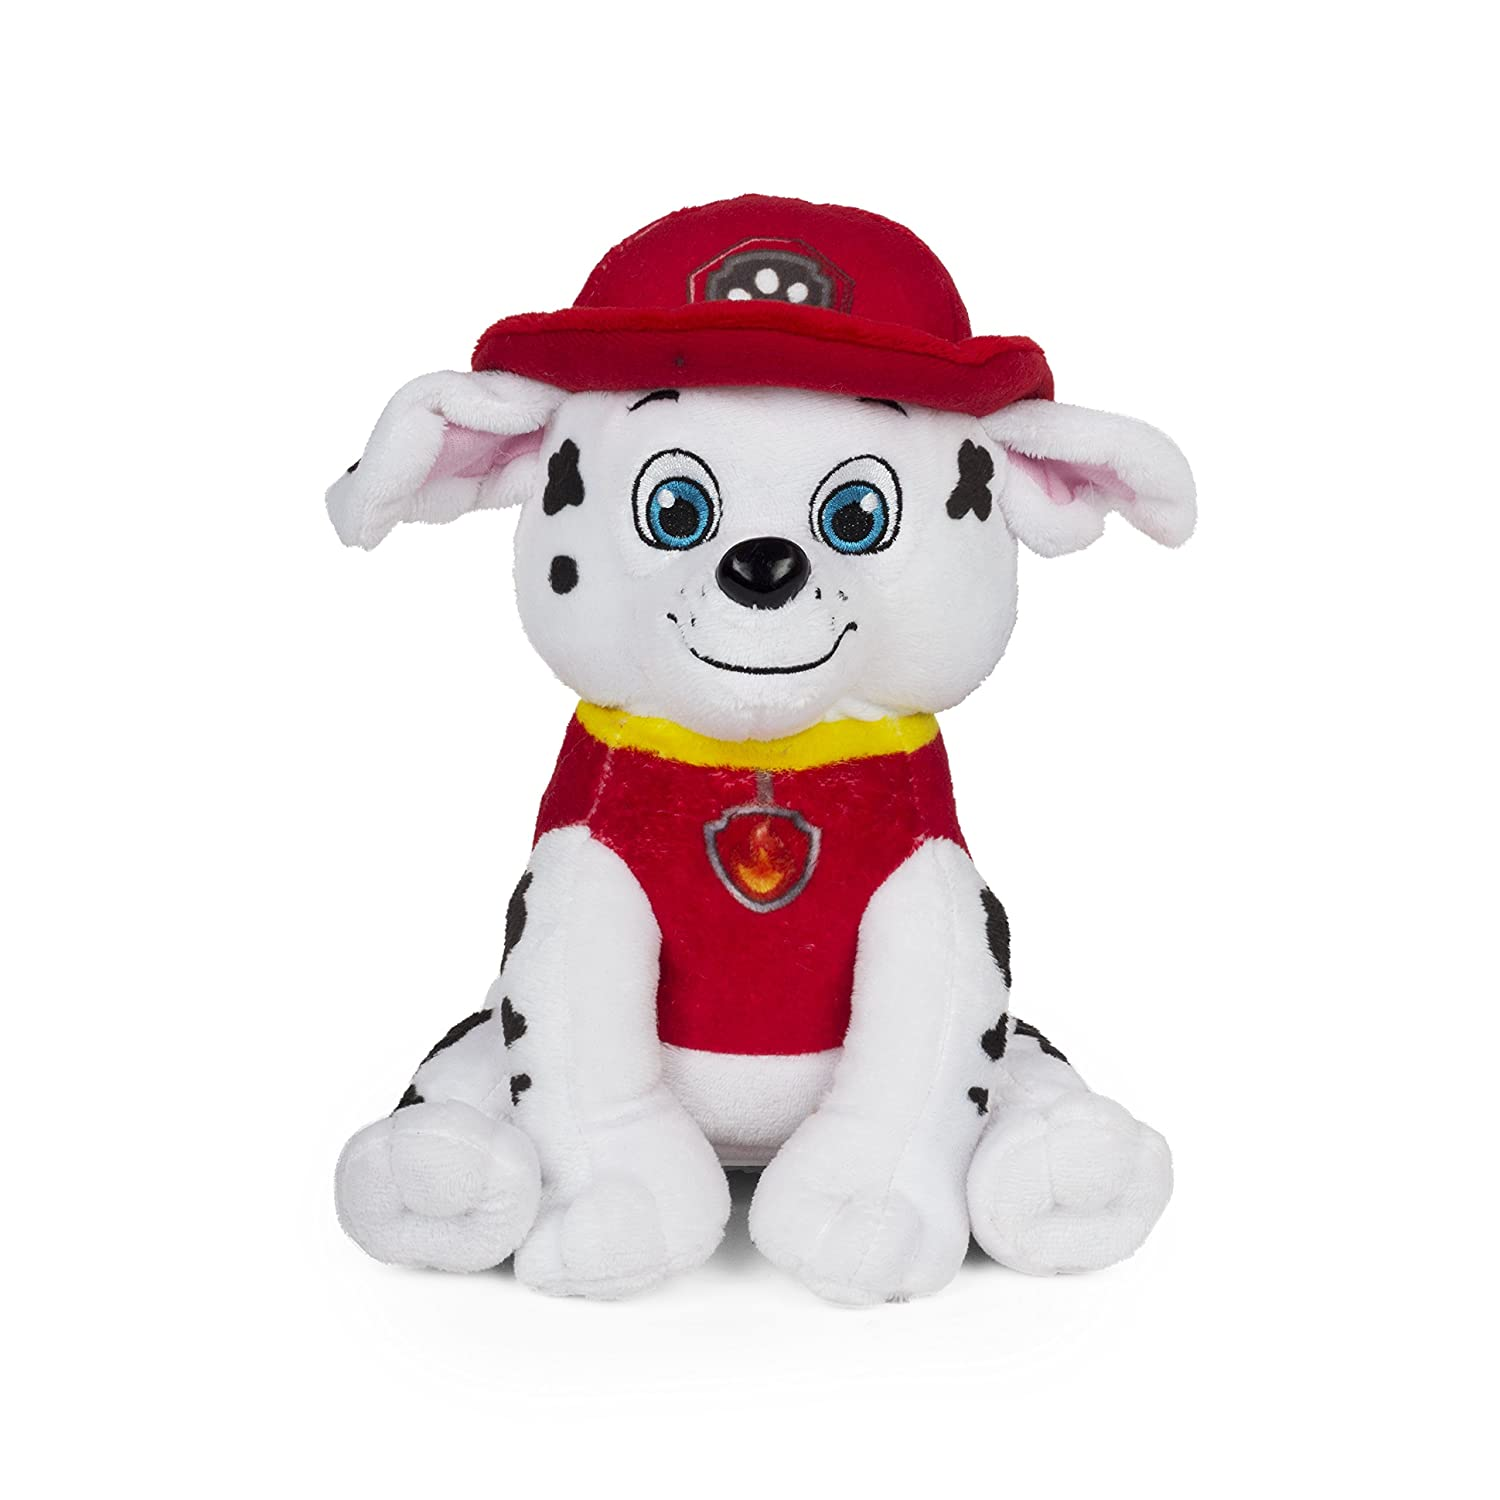 Paw FO26772973 Kids Coin Bank, 7.5 7.5 Spin Master